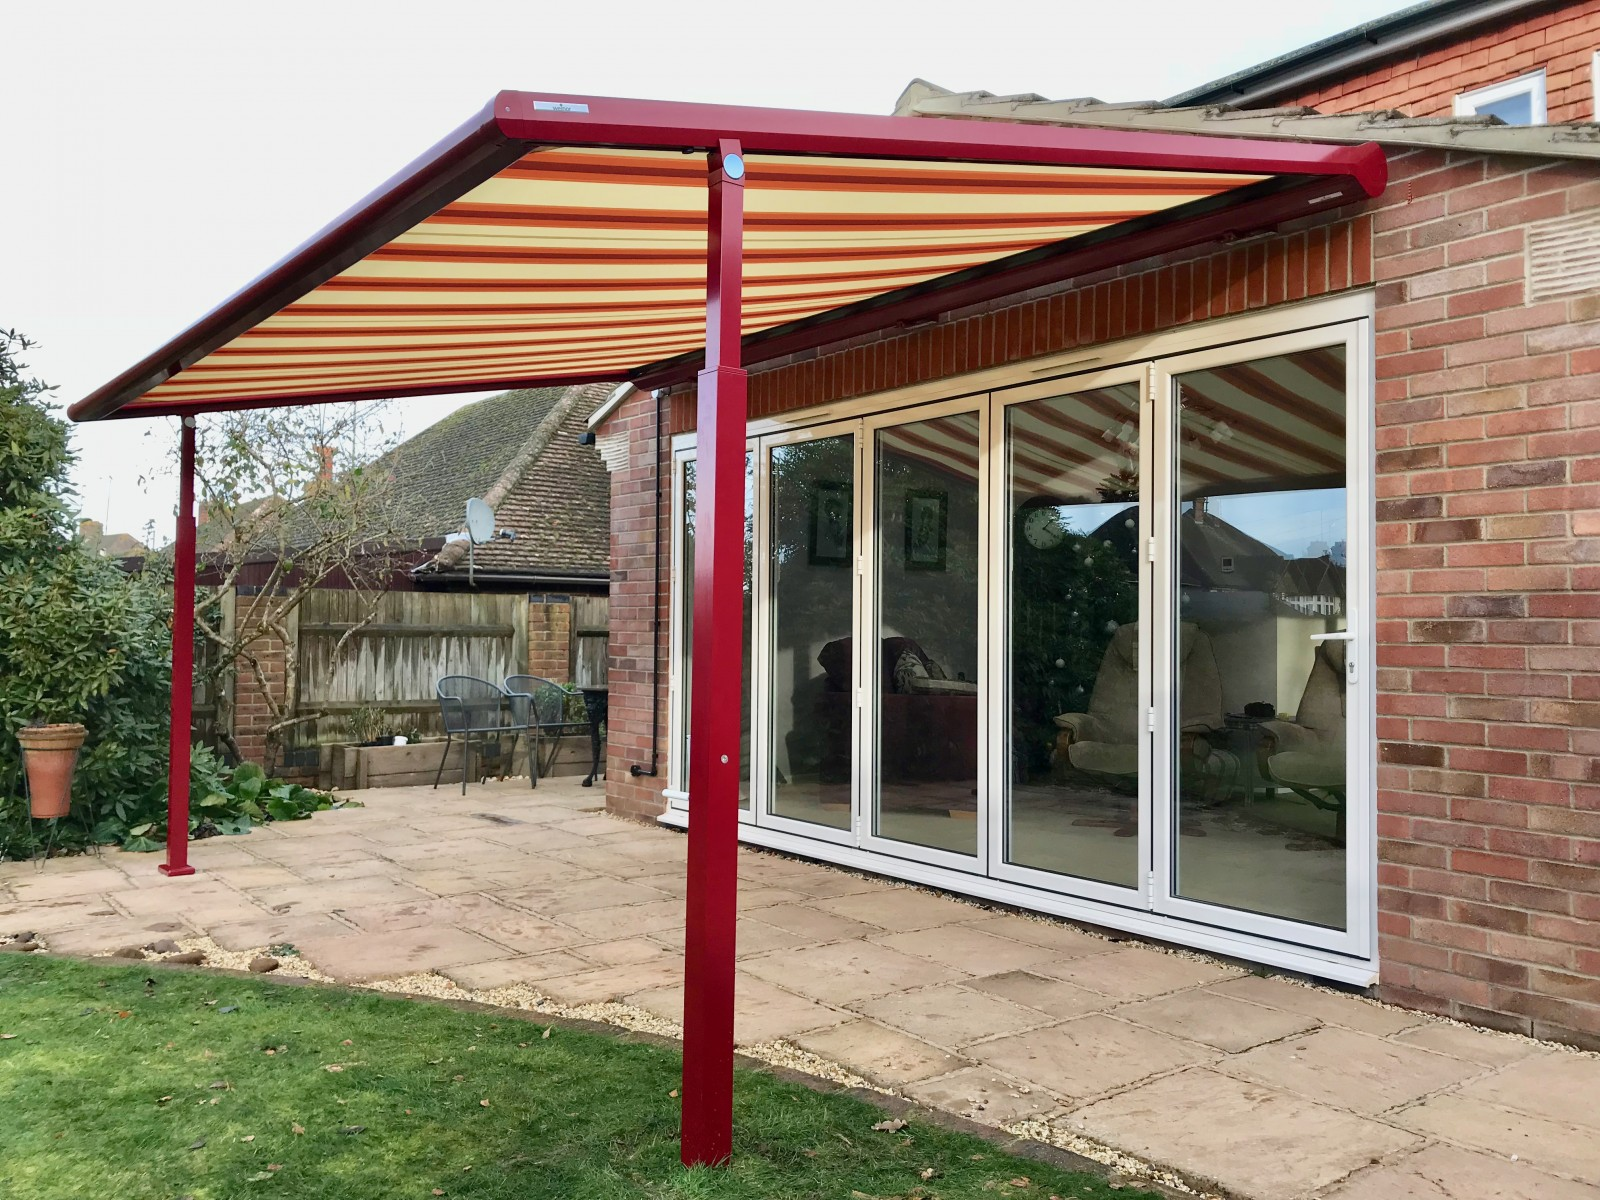 Weinor Pergola PLaza Viva Awning - Fitted inNewbury - Awningsouth